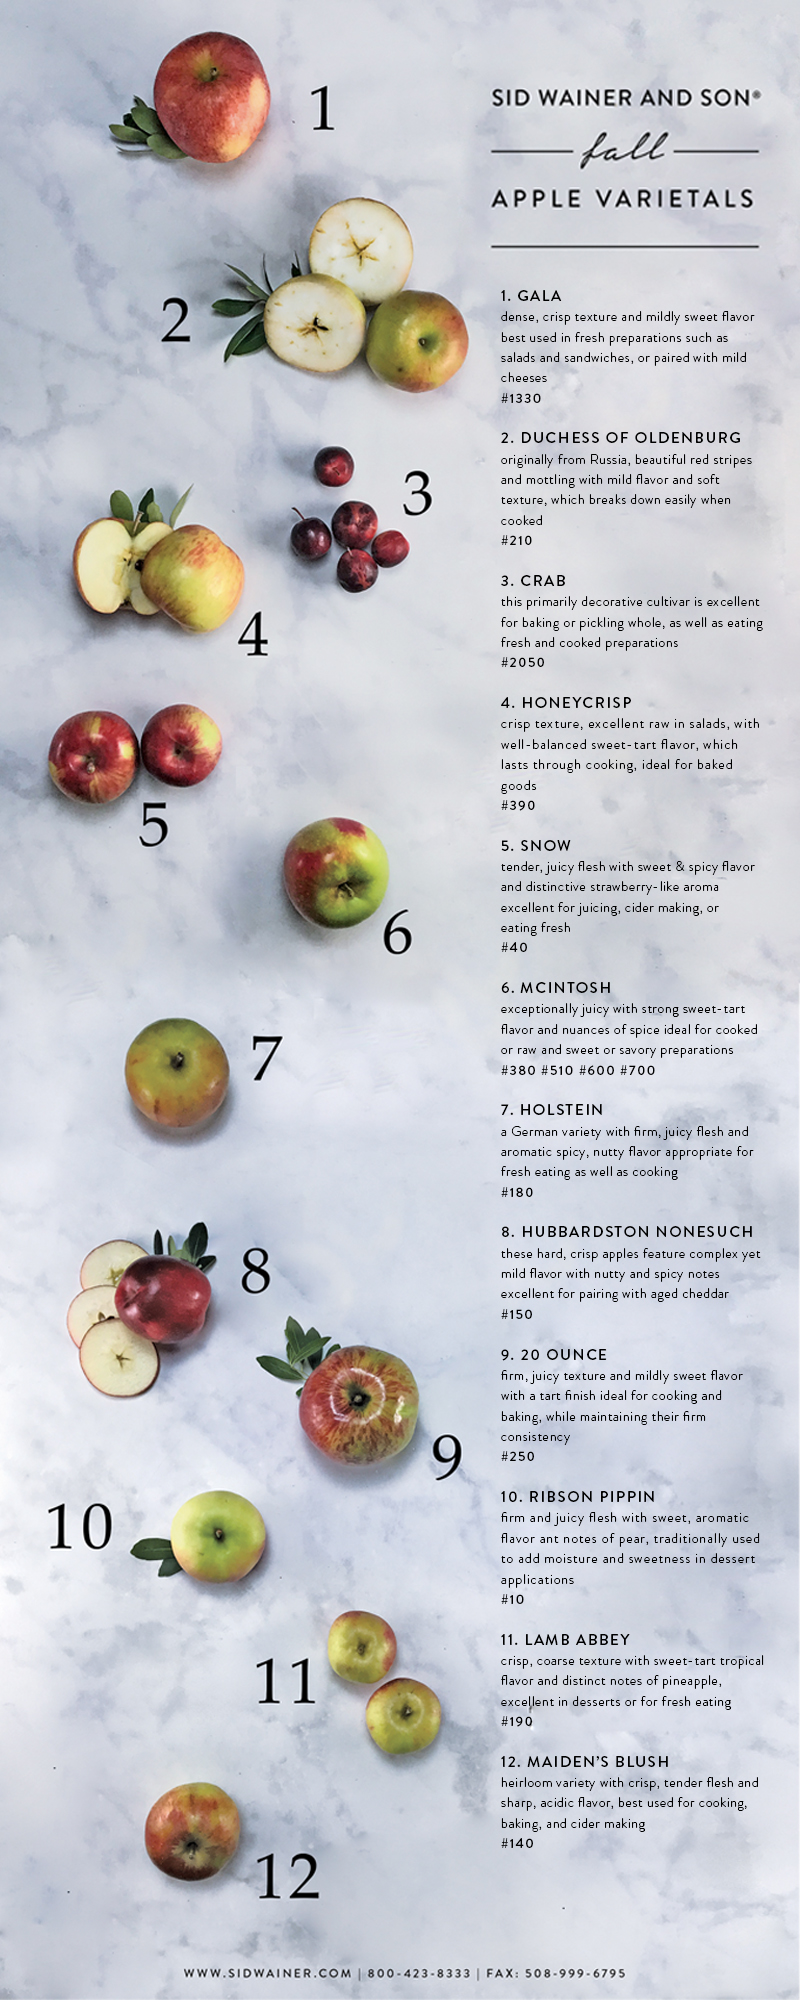 Fall Apples_Infographic.jpg